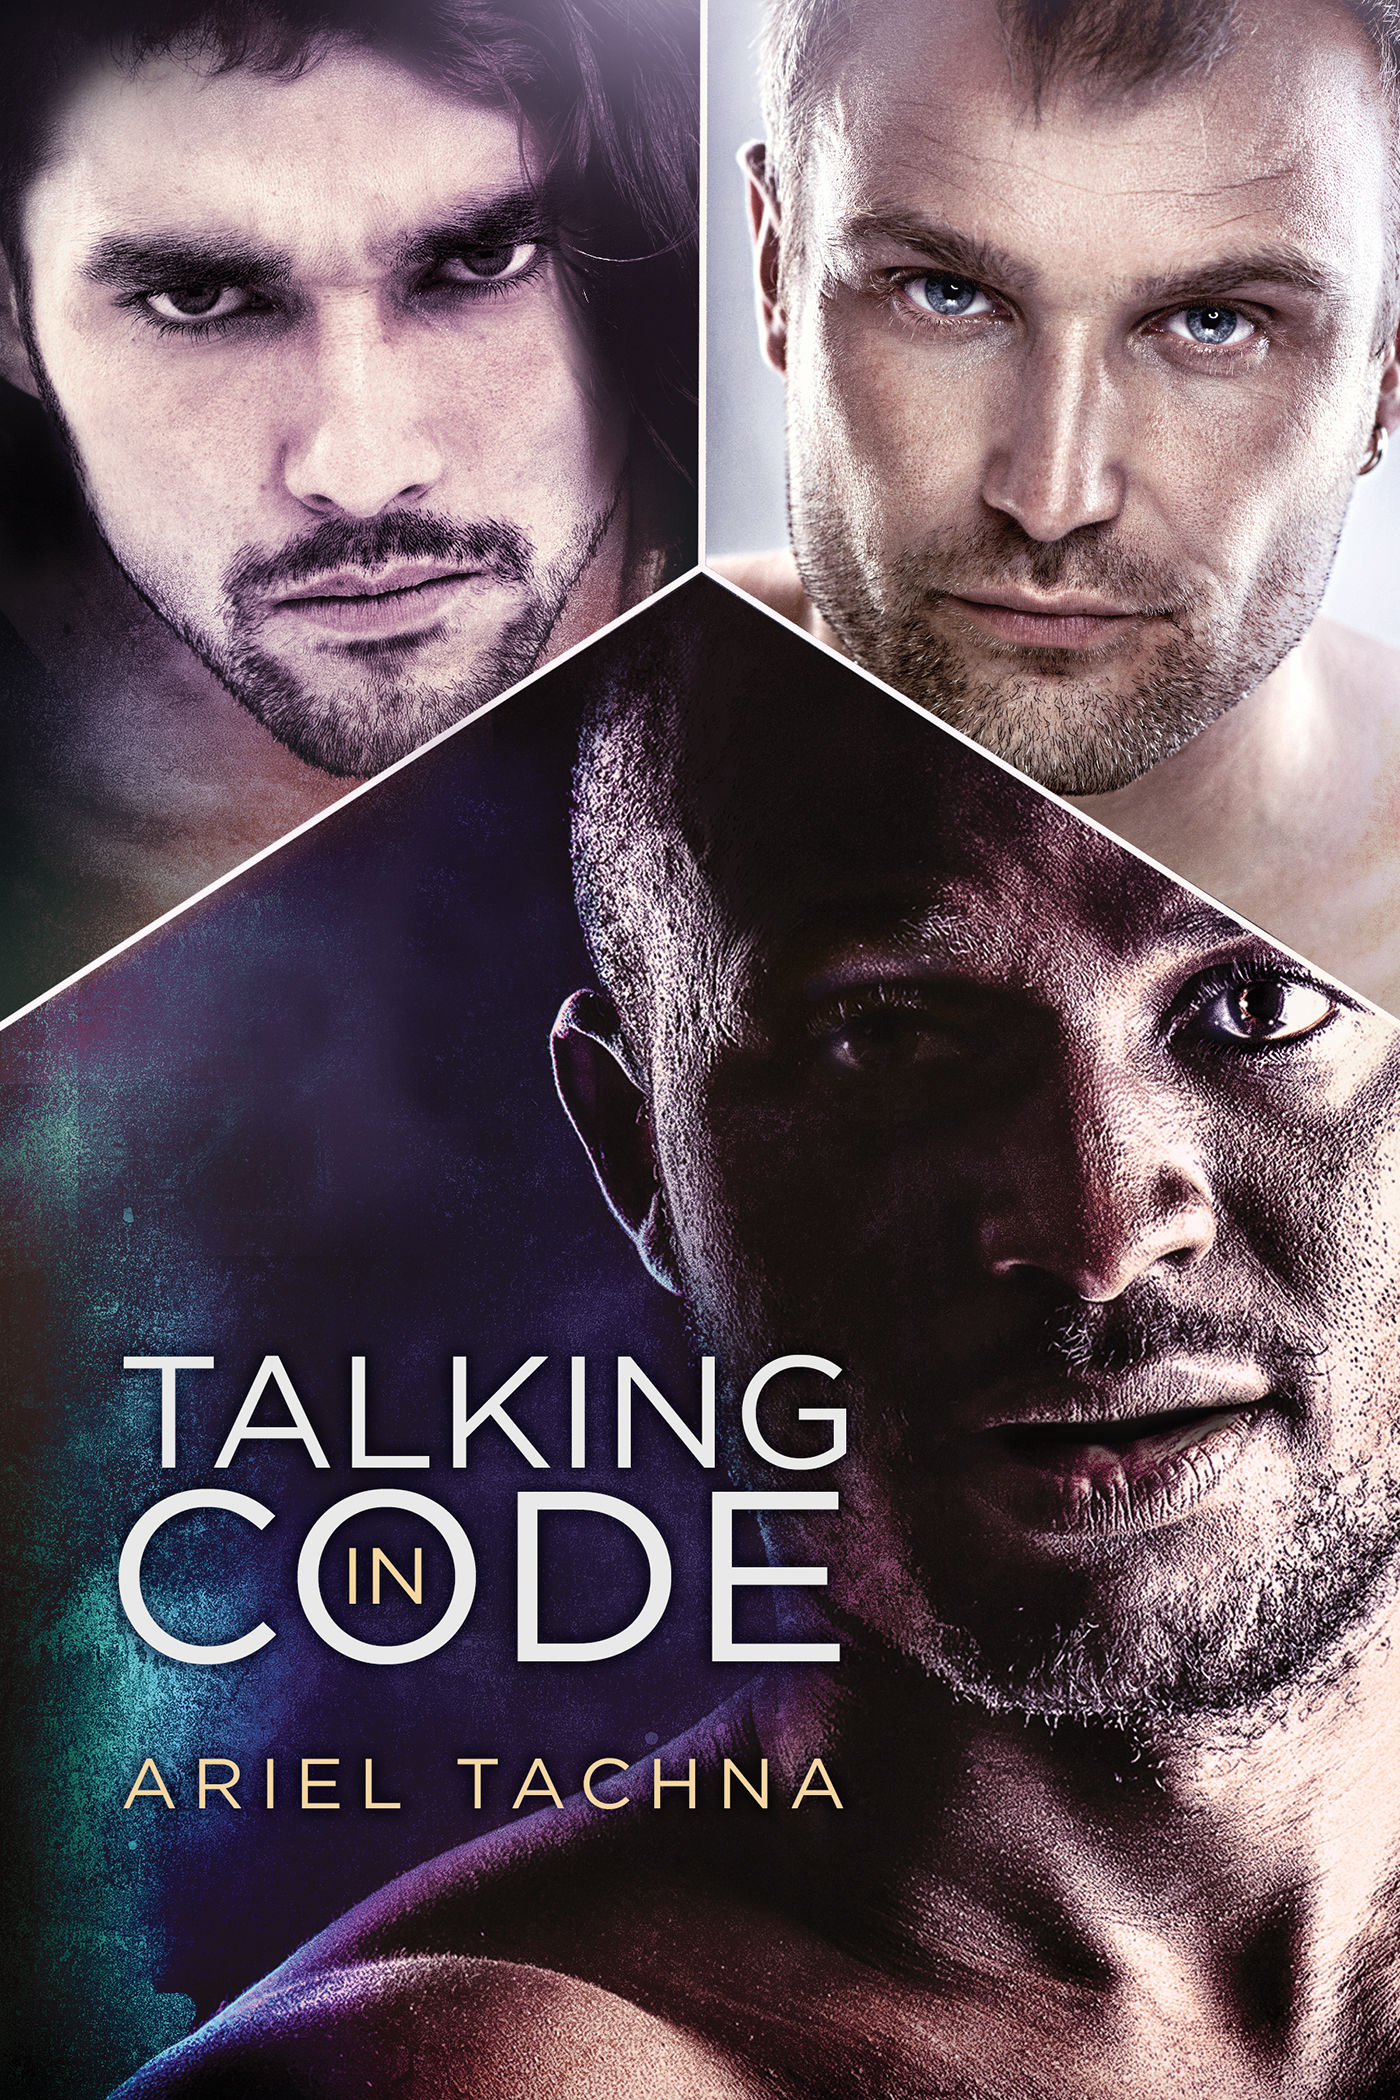 Review: Talking in Code by Ariel Tachna